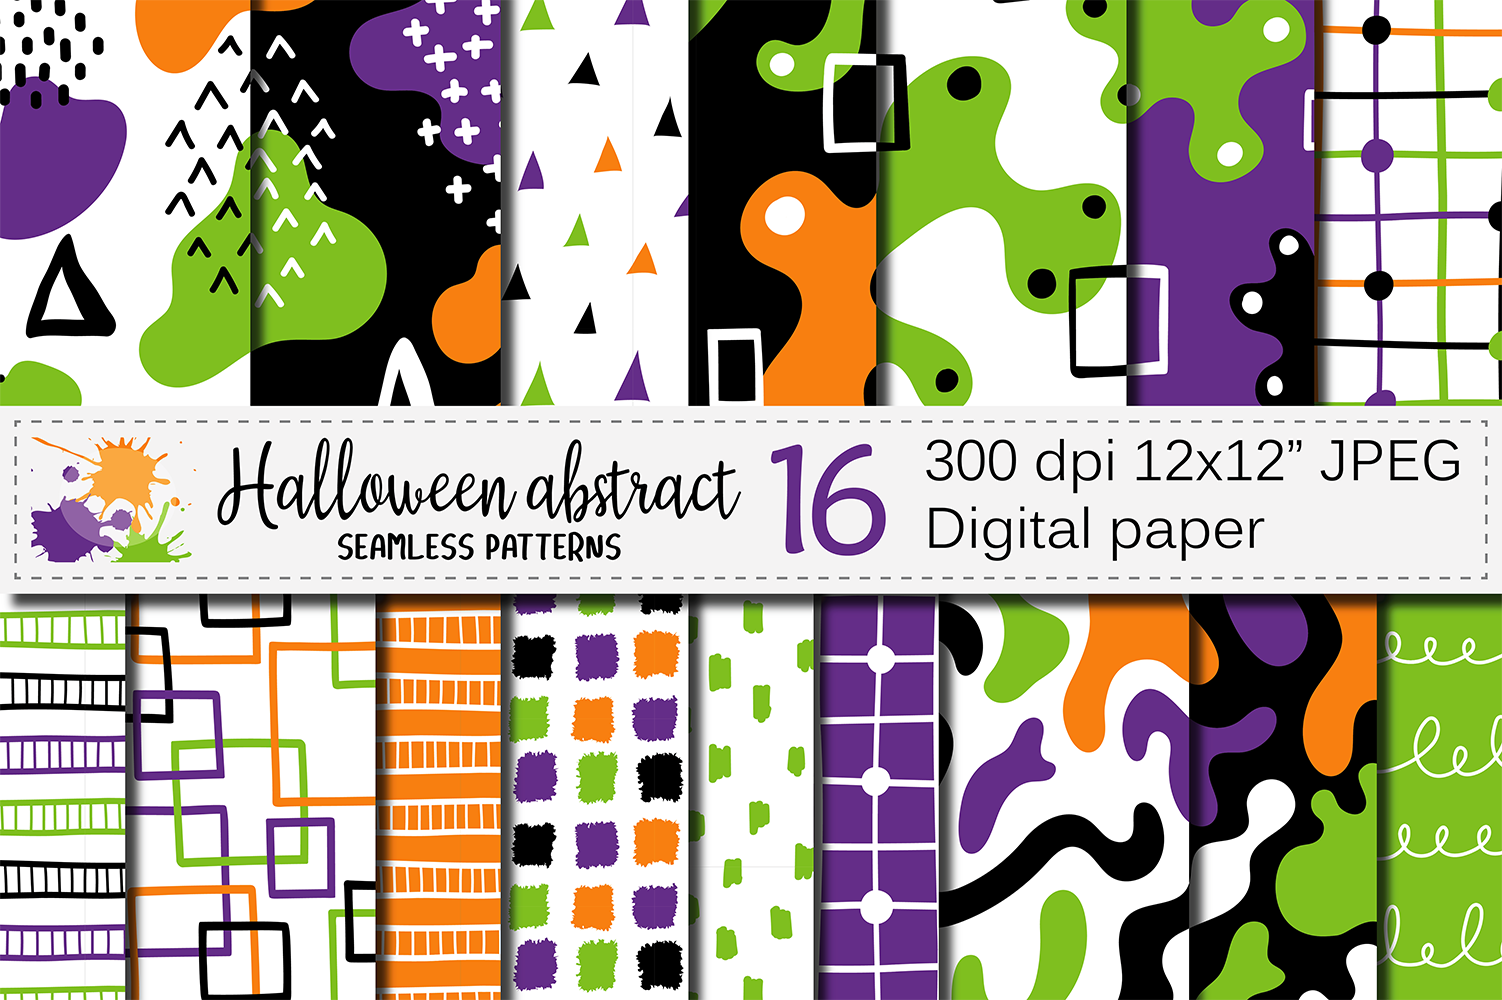 Halloween abstract seamless digital papers / patterns example image 1